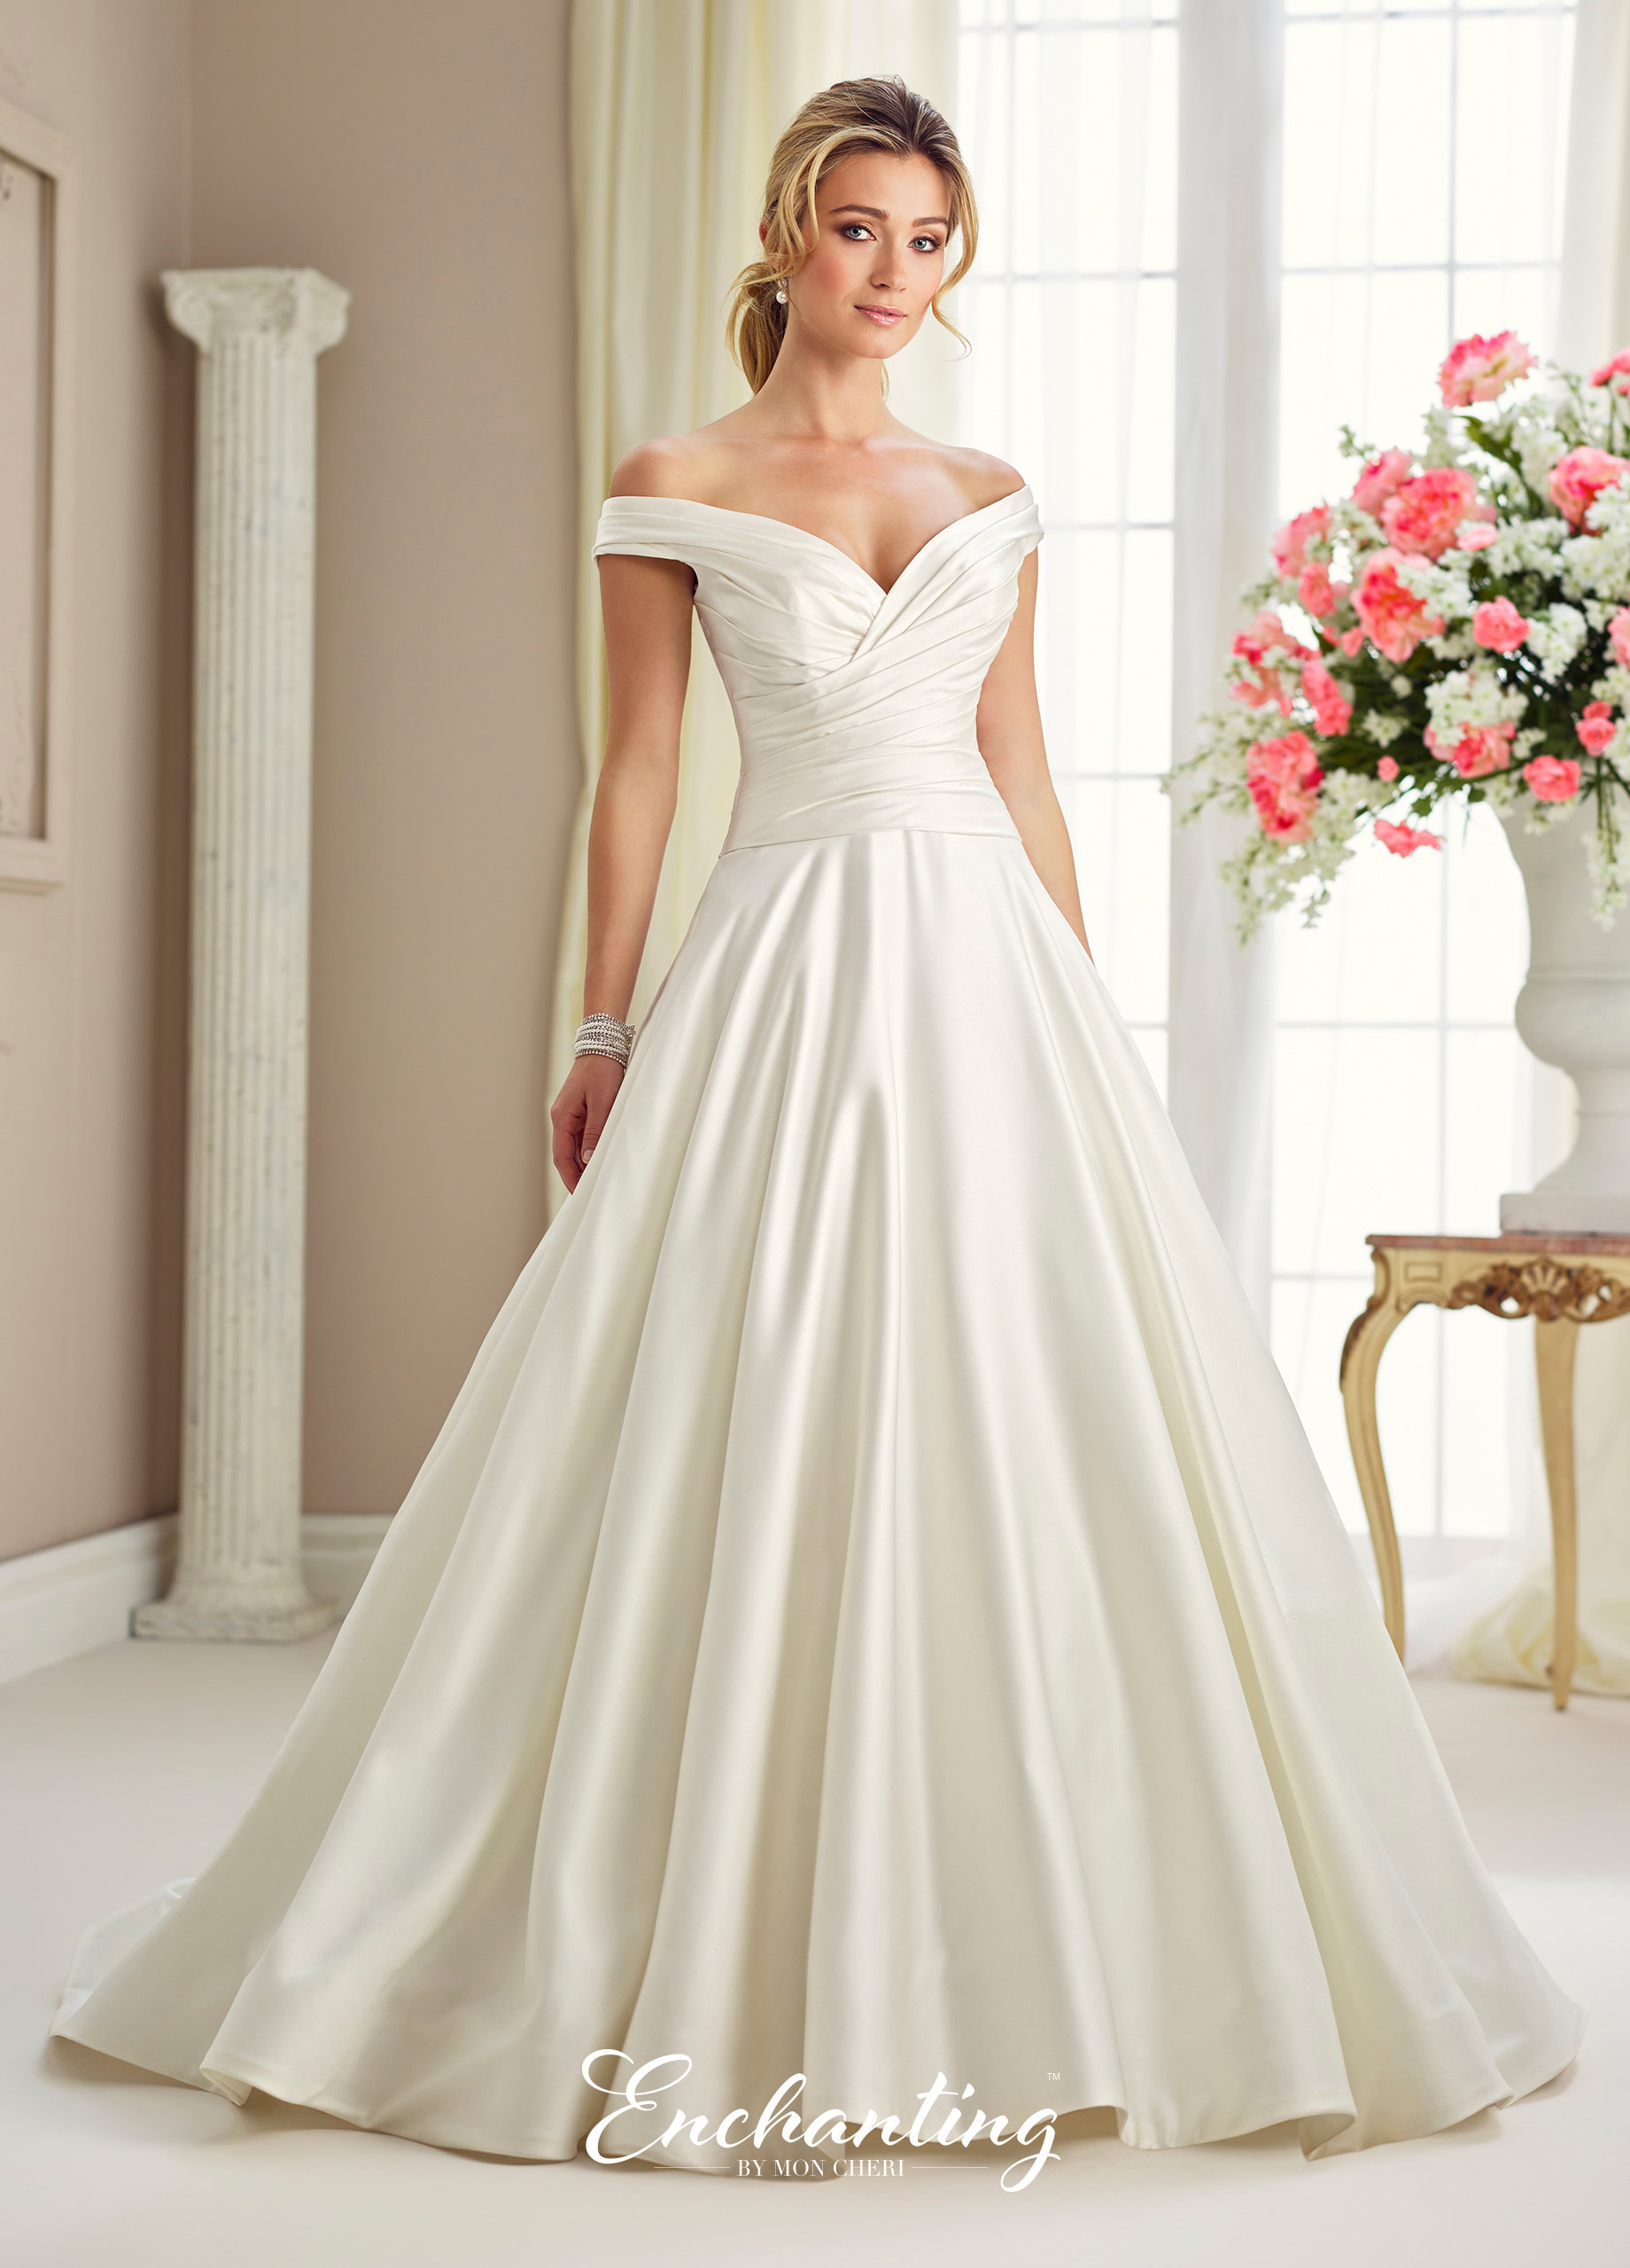 Shop bridal gowns inspired by jaqueline kennedys wedding dress shop bridal gowns inspired by jaqueline kennedys wedding dress instyle junglespirit Image collections